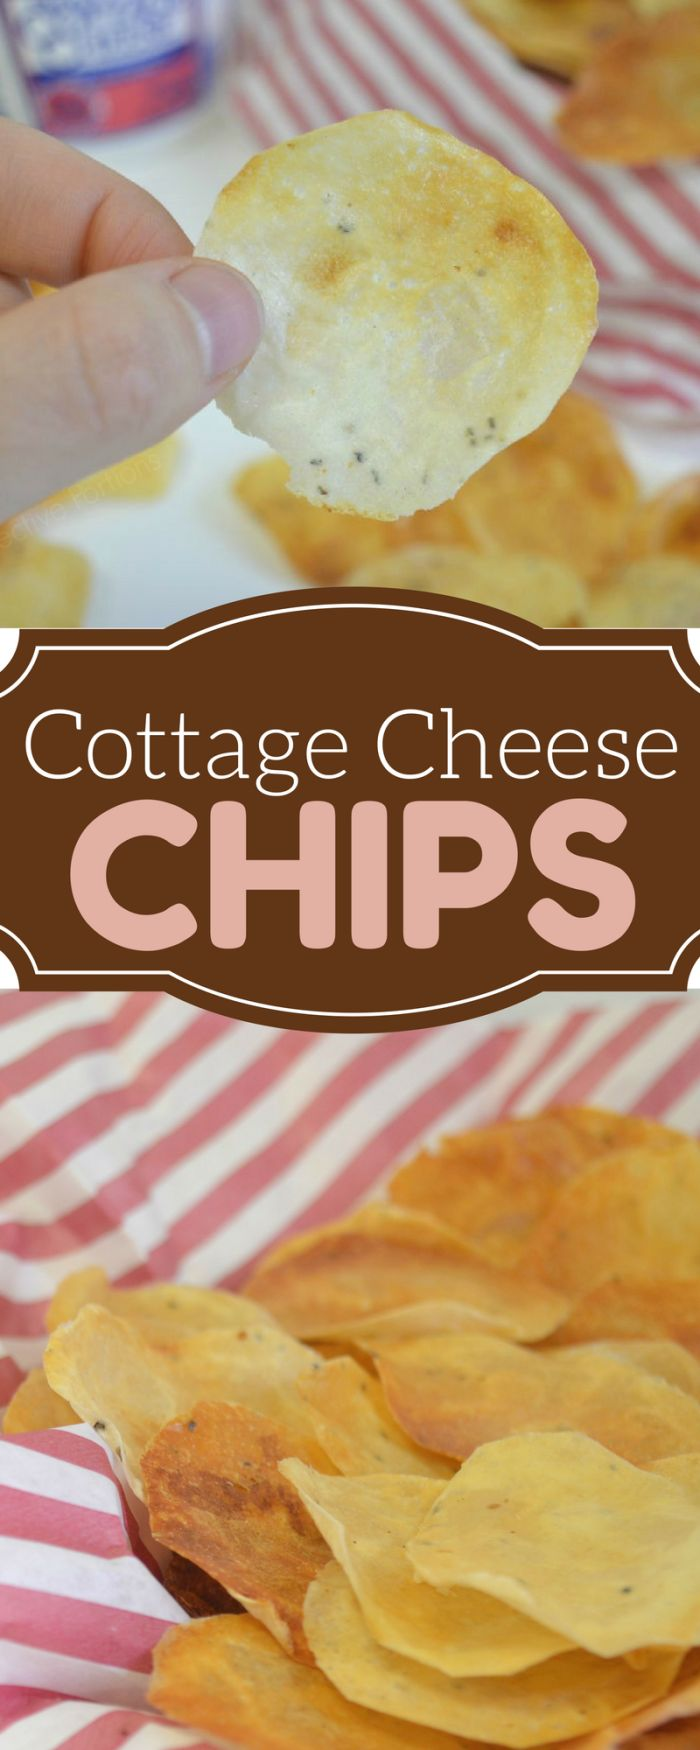 Cottage Cheese Crisps, snack on a healthier chip. #cottagecheesechips #healthychips